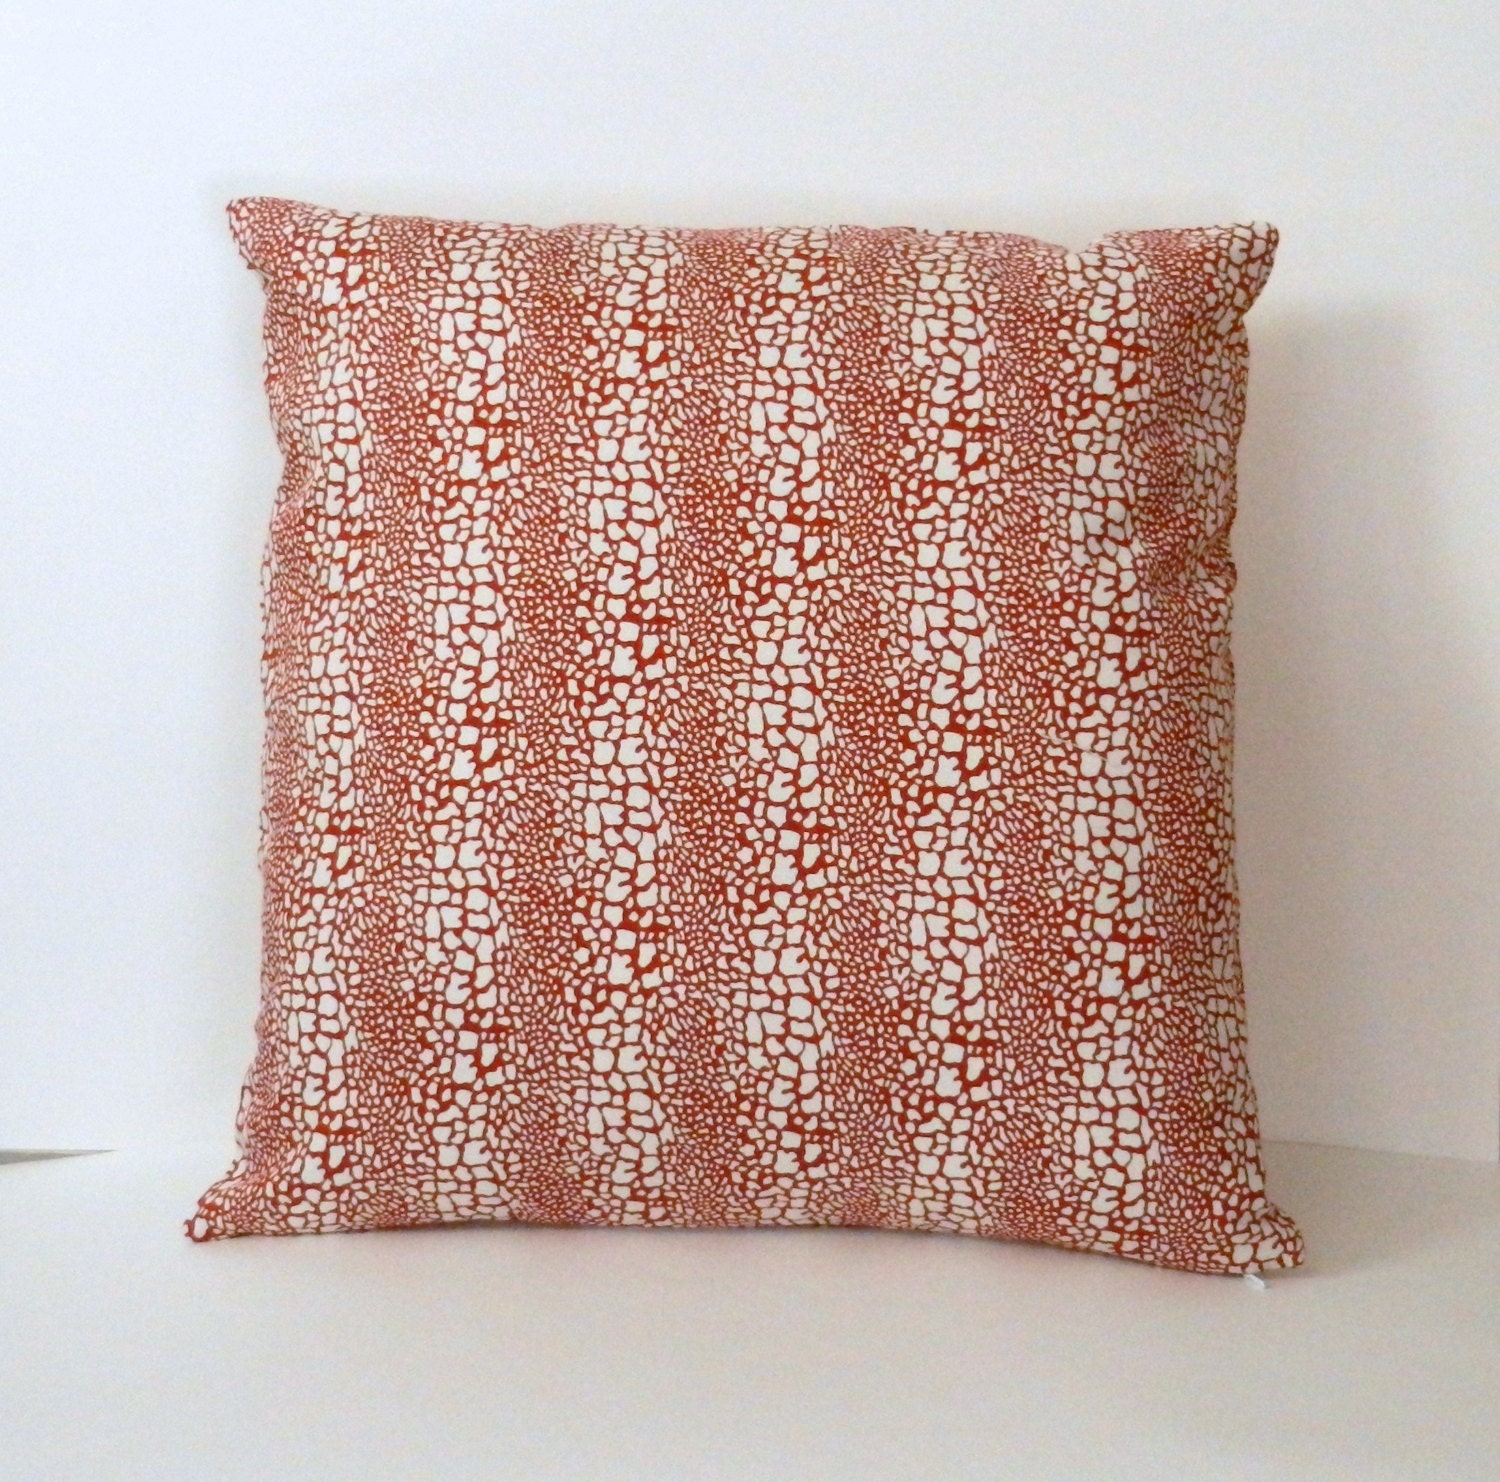 Animal Print Throw Pillow Cover Snakeskin pattern Red and